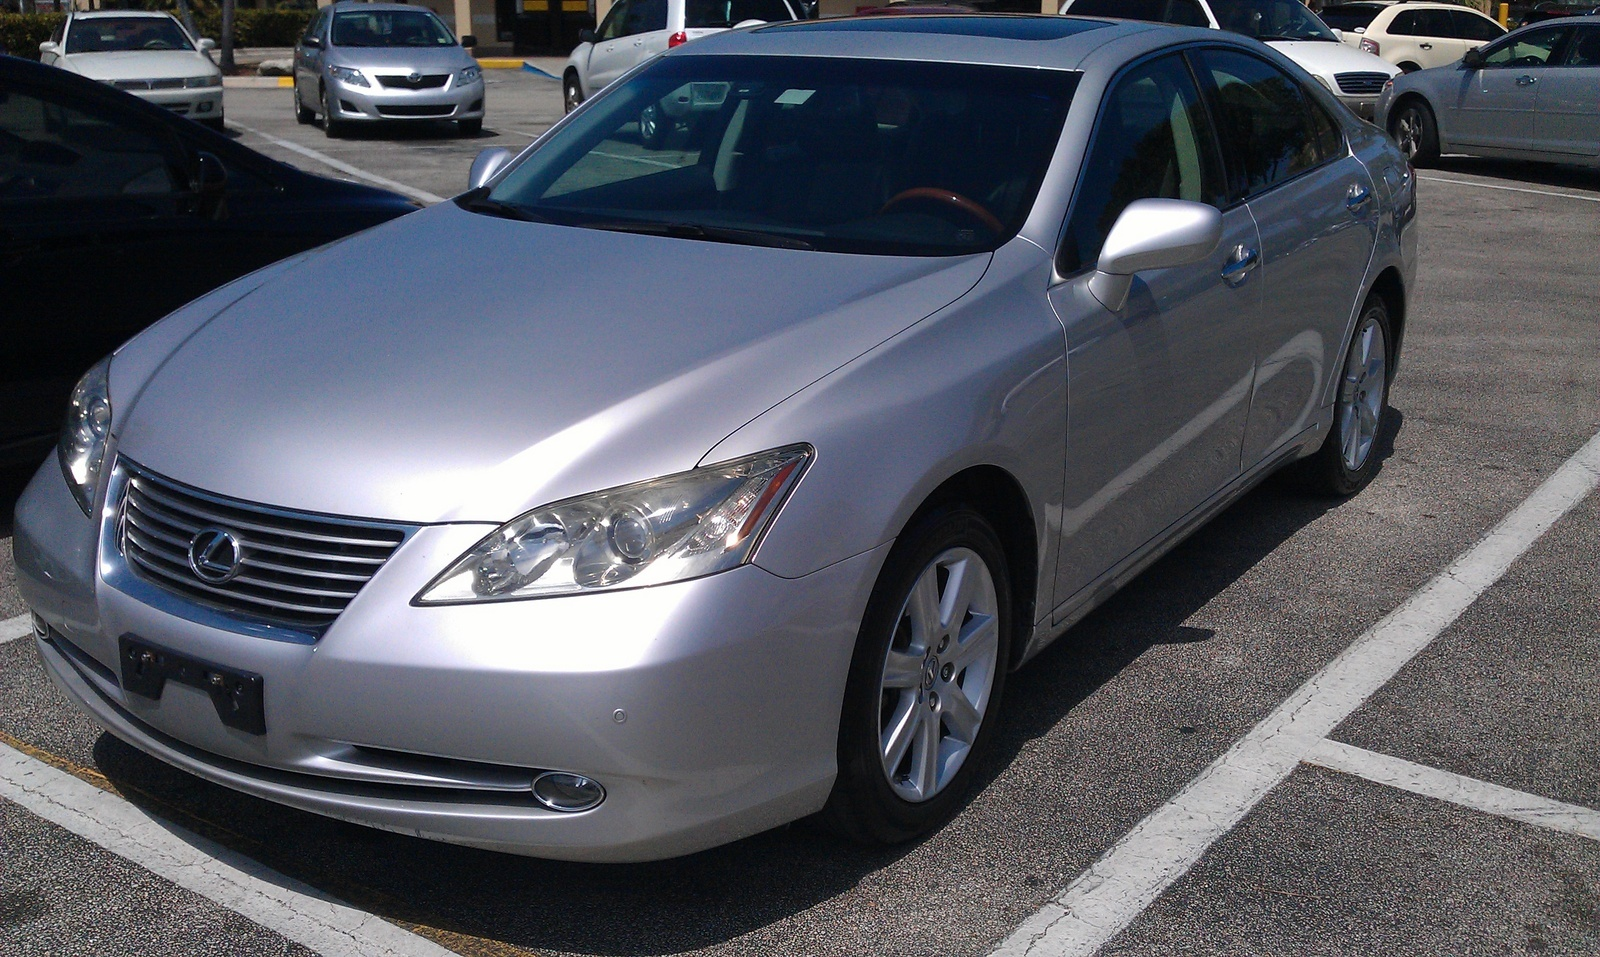 lexus es 350 questions hi i have a clean lexus year 2008 one owner 62000 original miles with. Black Bedroom Furniture Sets. Home Design Ideas